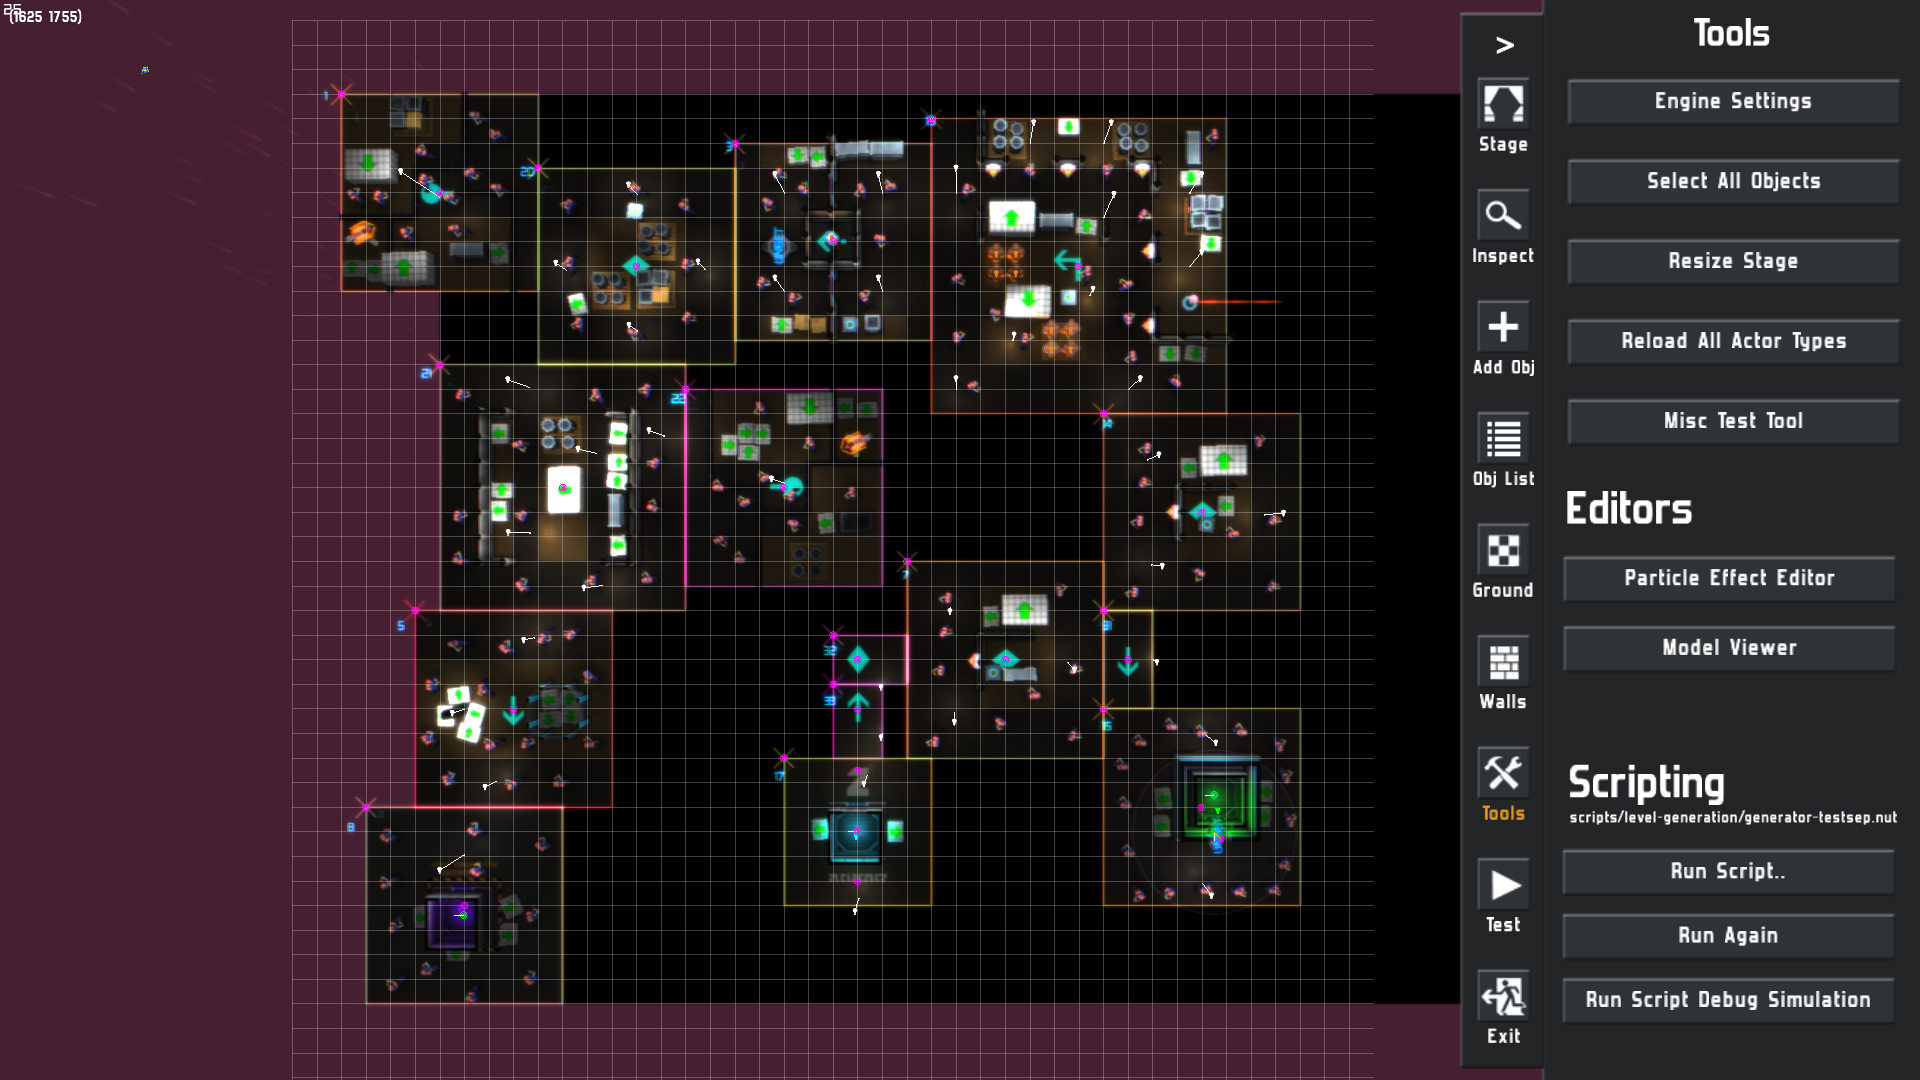 About Procedural Level Generation in Neon Chrome | Neon Chrome